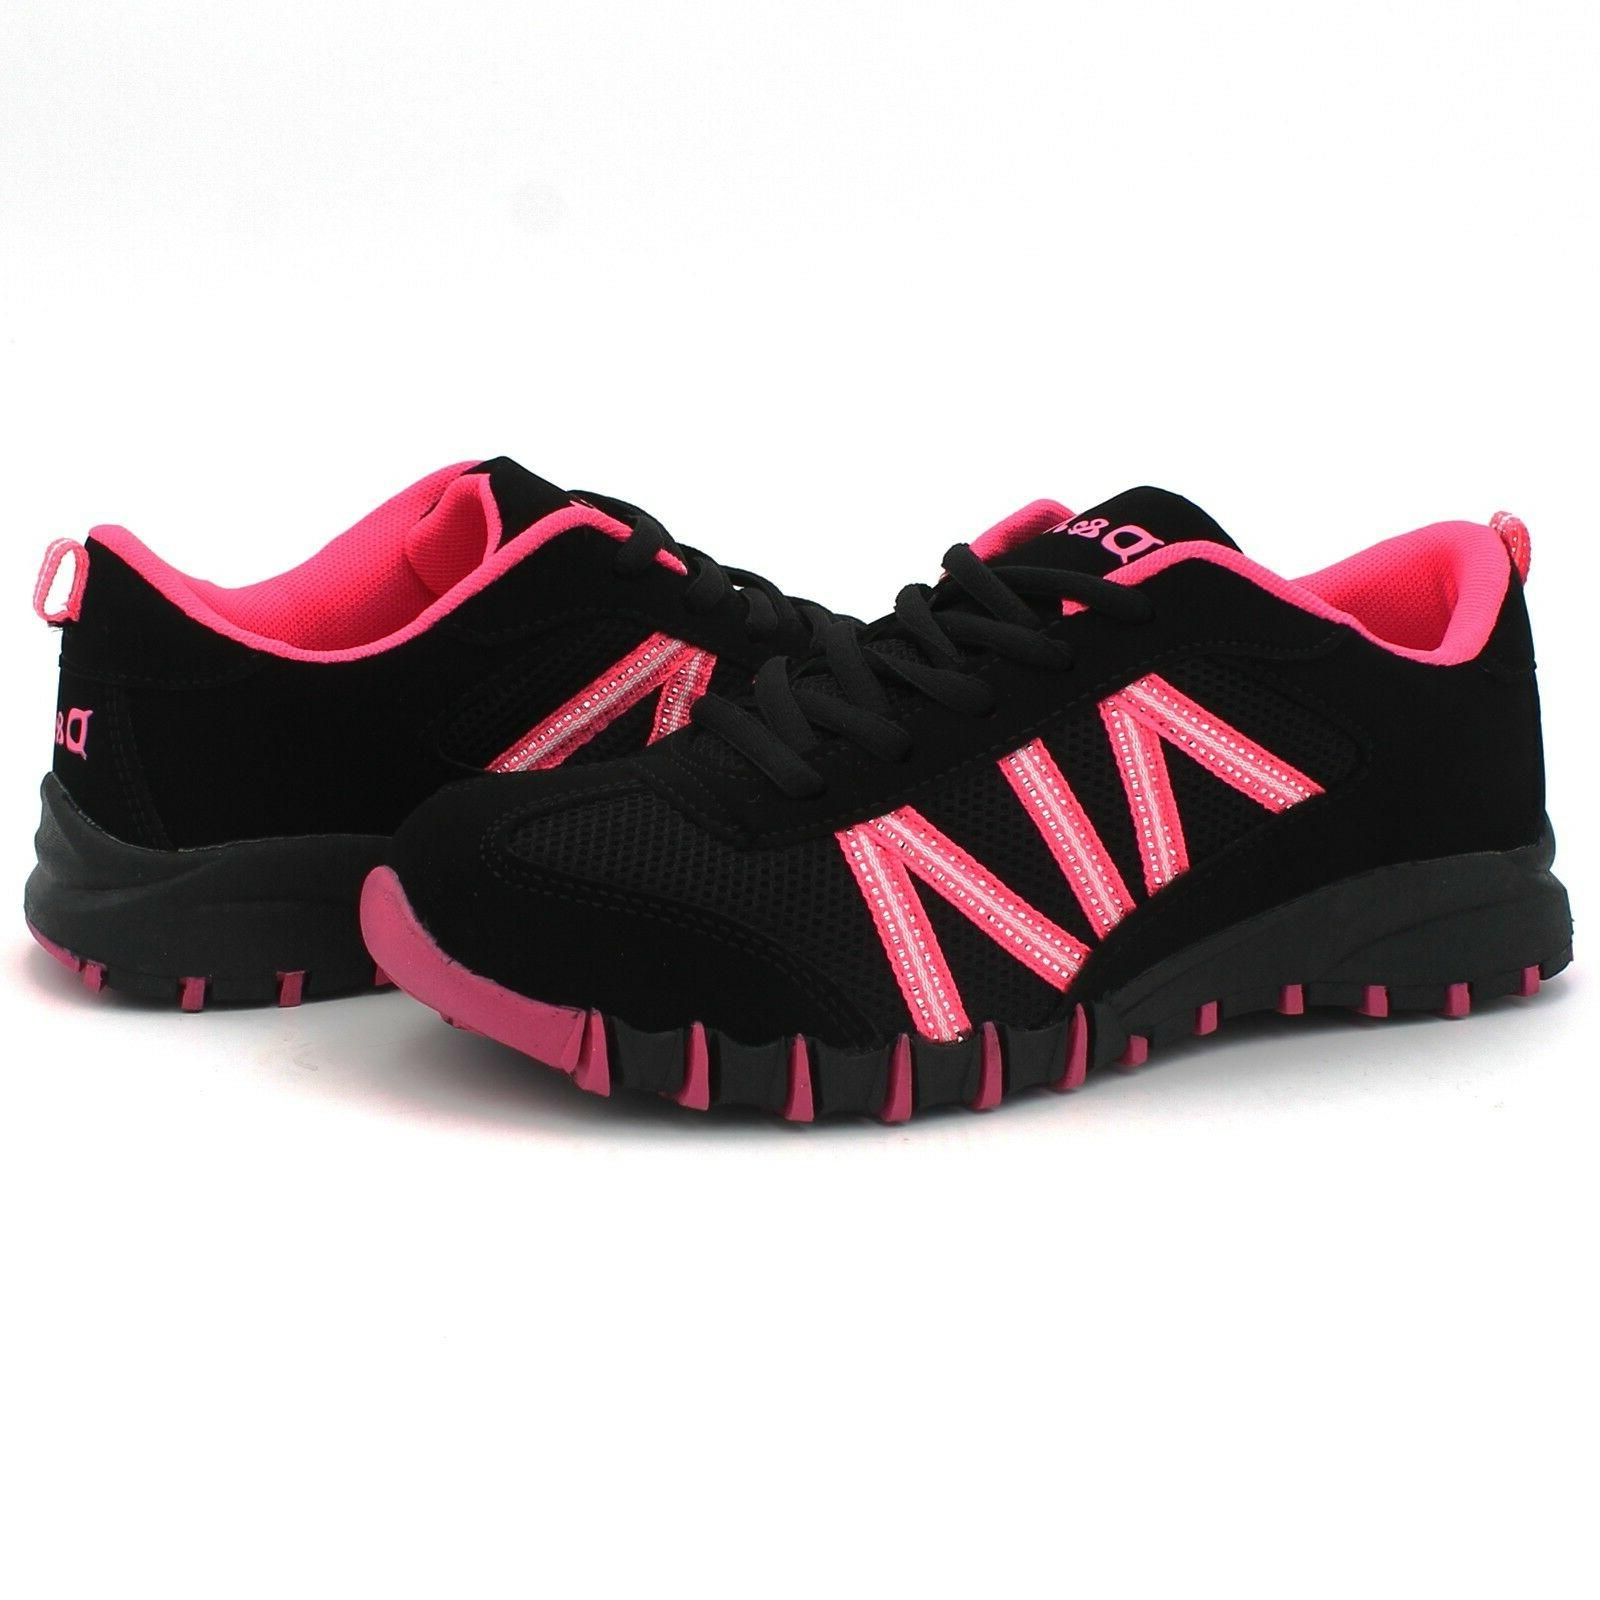 Women's Sneaker Tennis Lace-Up